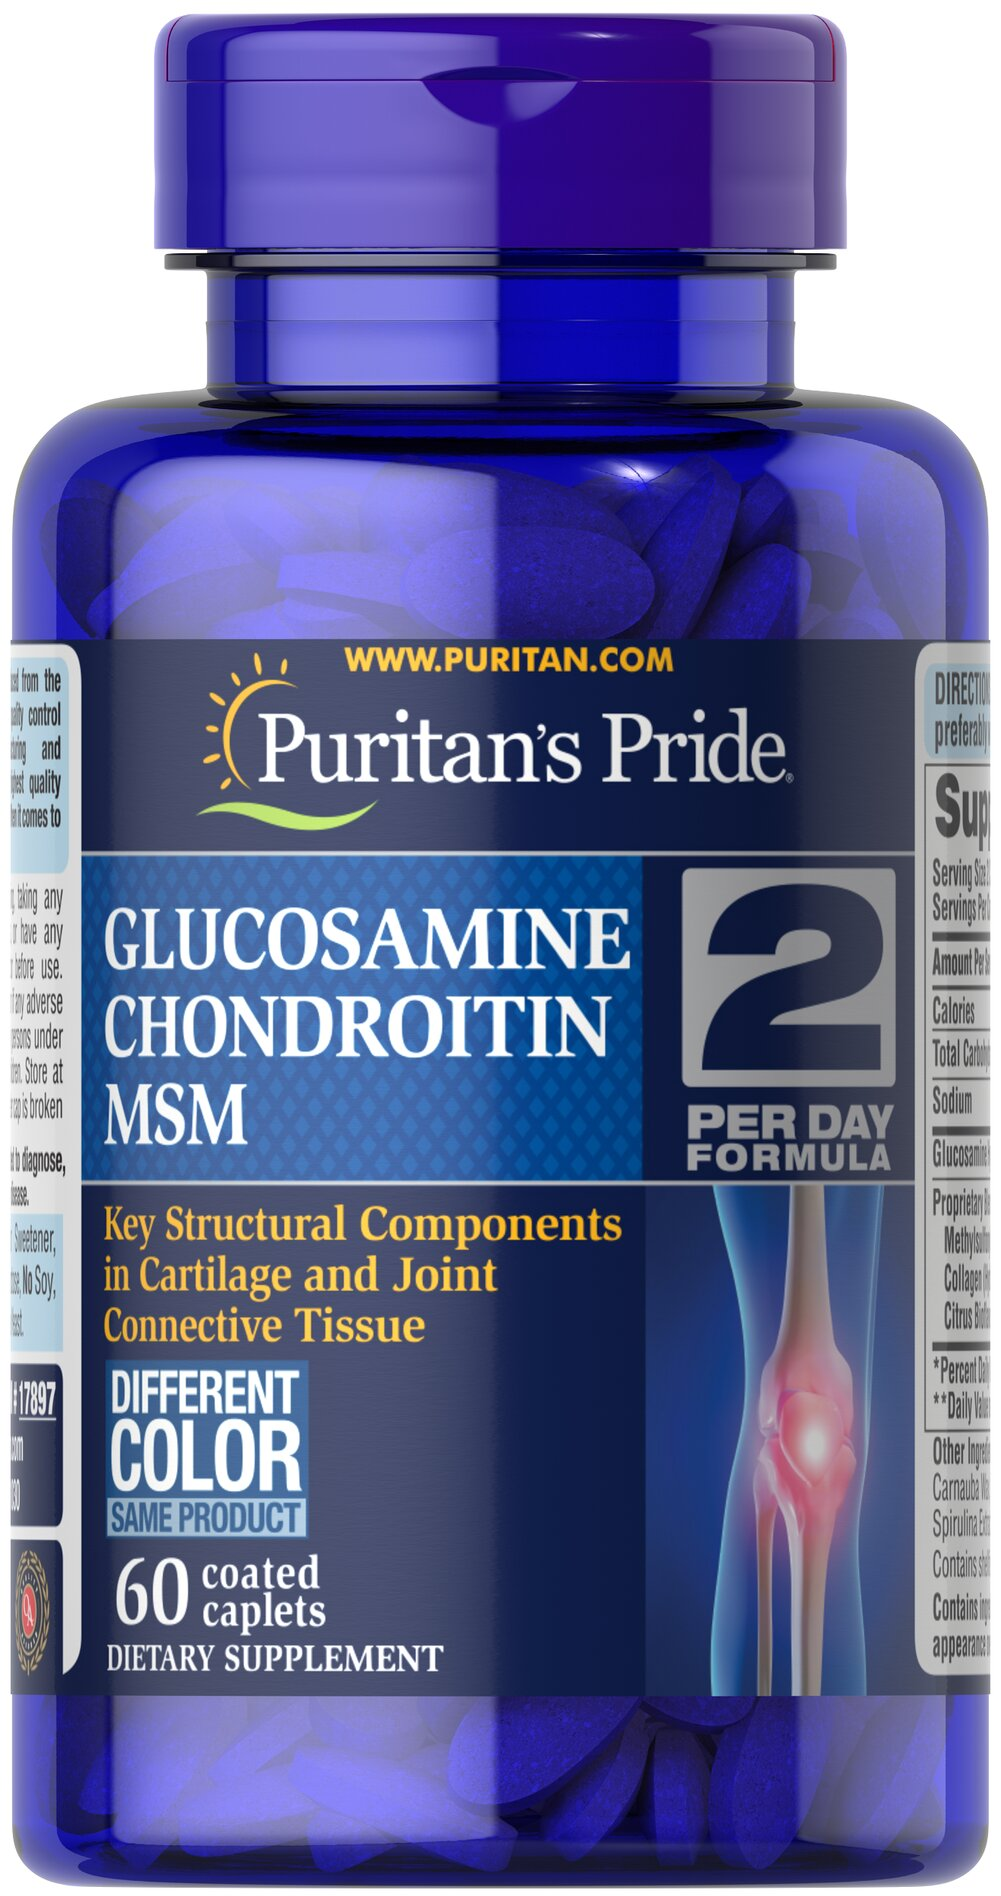 Triple Strength Glucosamine, Chondroitin & MSM Joint Soother®  60 Caplets  $11.39